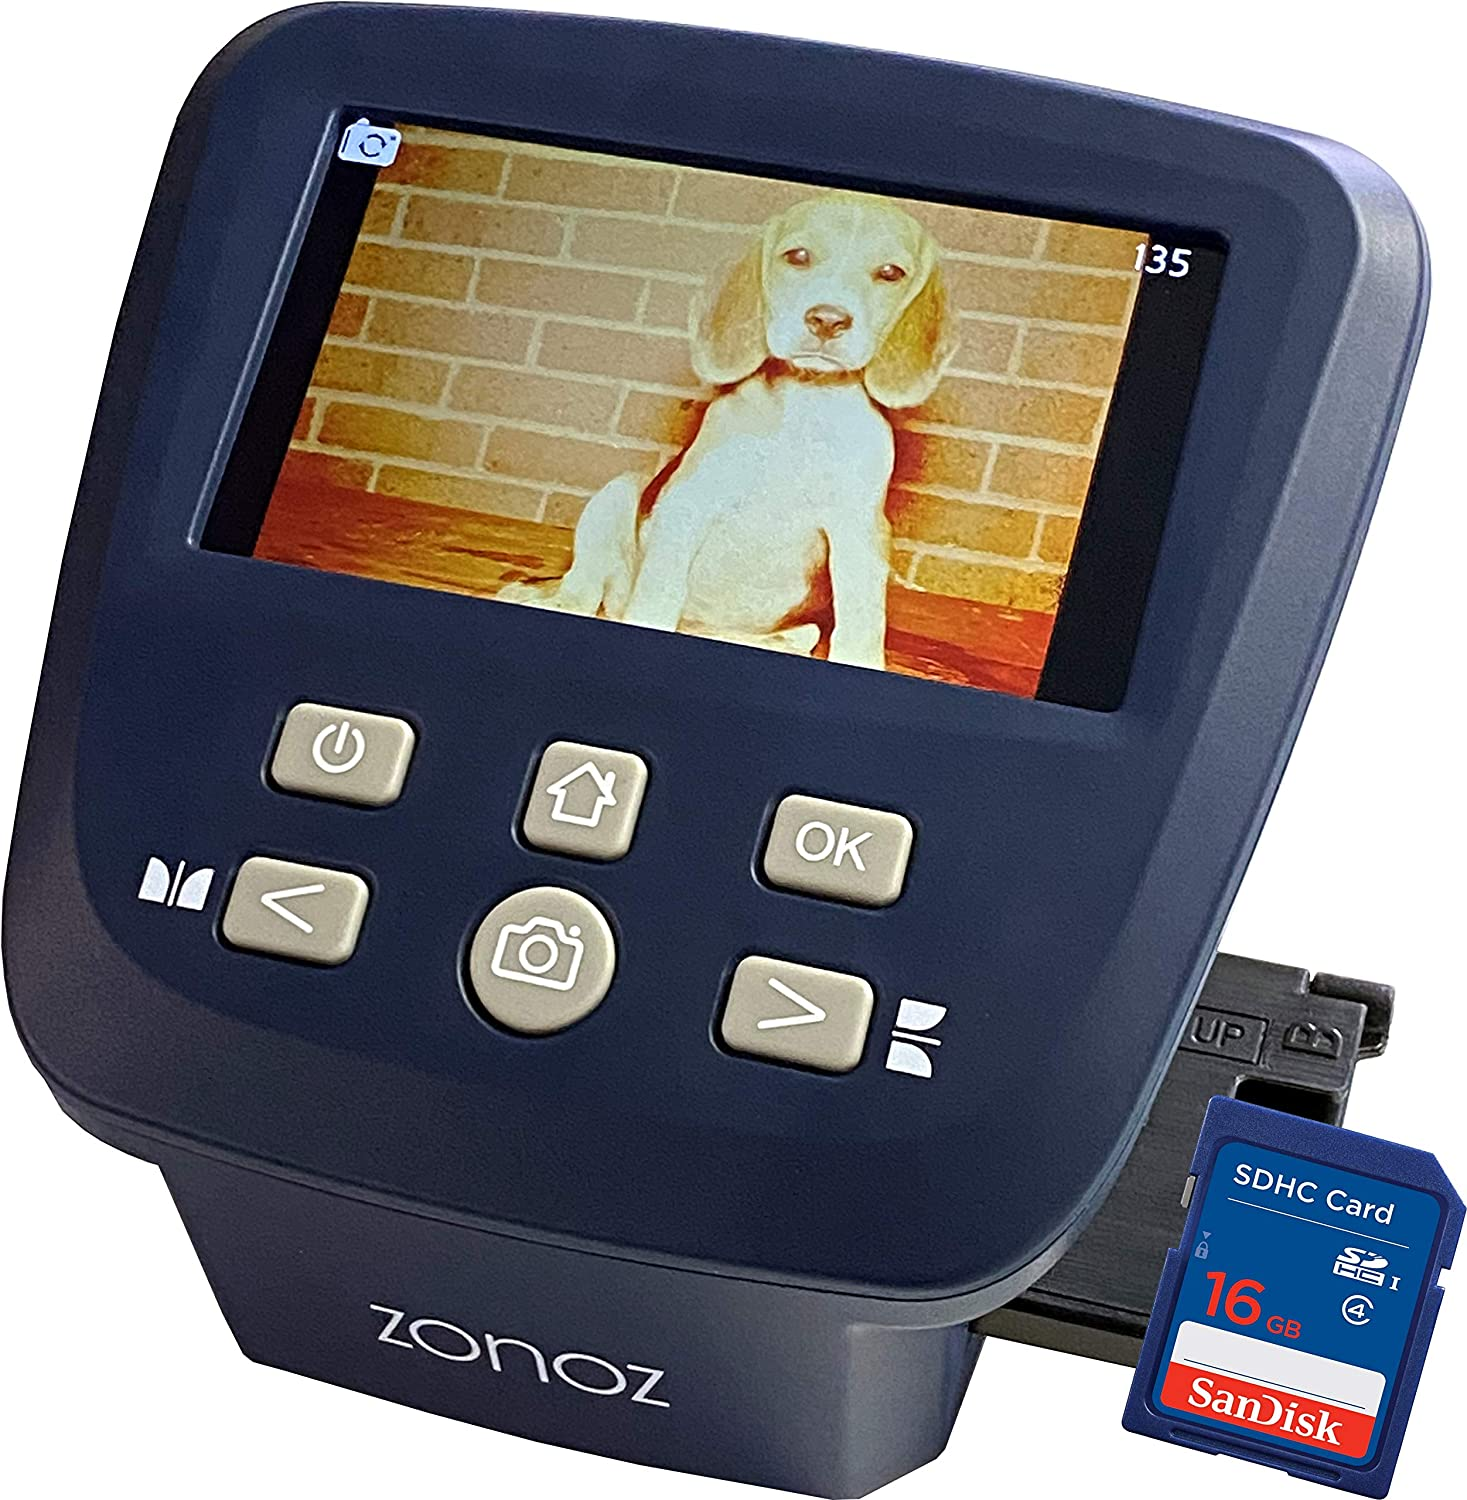 110 126 Includes Large Bright 5-Inch LCD Easy-Load Film Inserts Adapters Converts 35mm 16GB SD Card Super 8 /& 8mm Film Negatives /& Slides to JPEG zonoz FS-Five Digital Film /& Slide Scanner